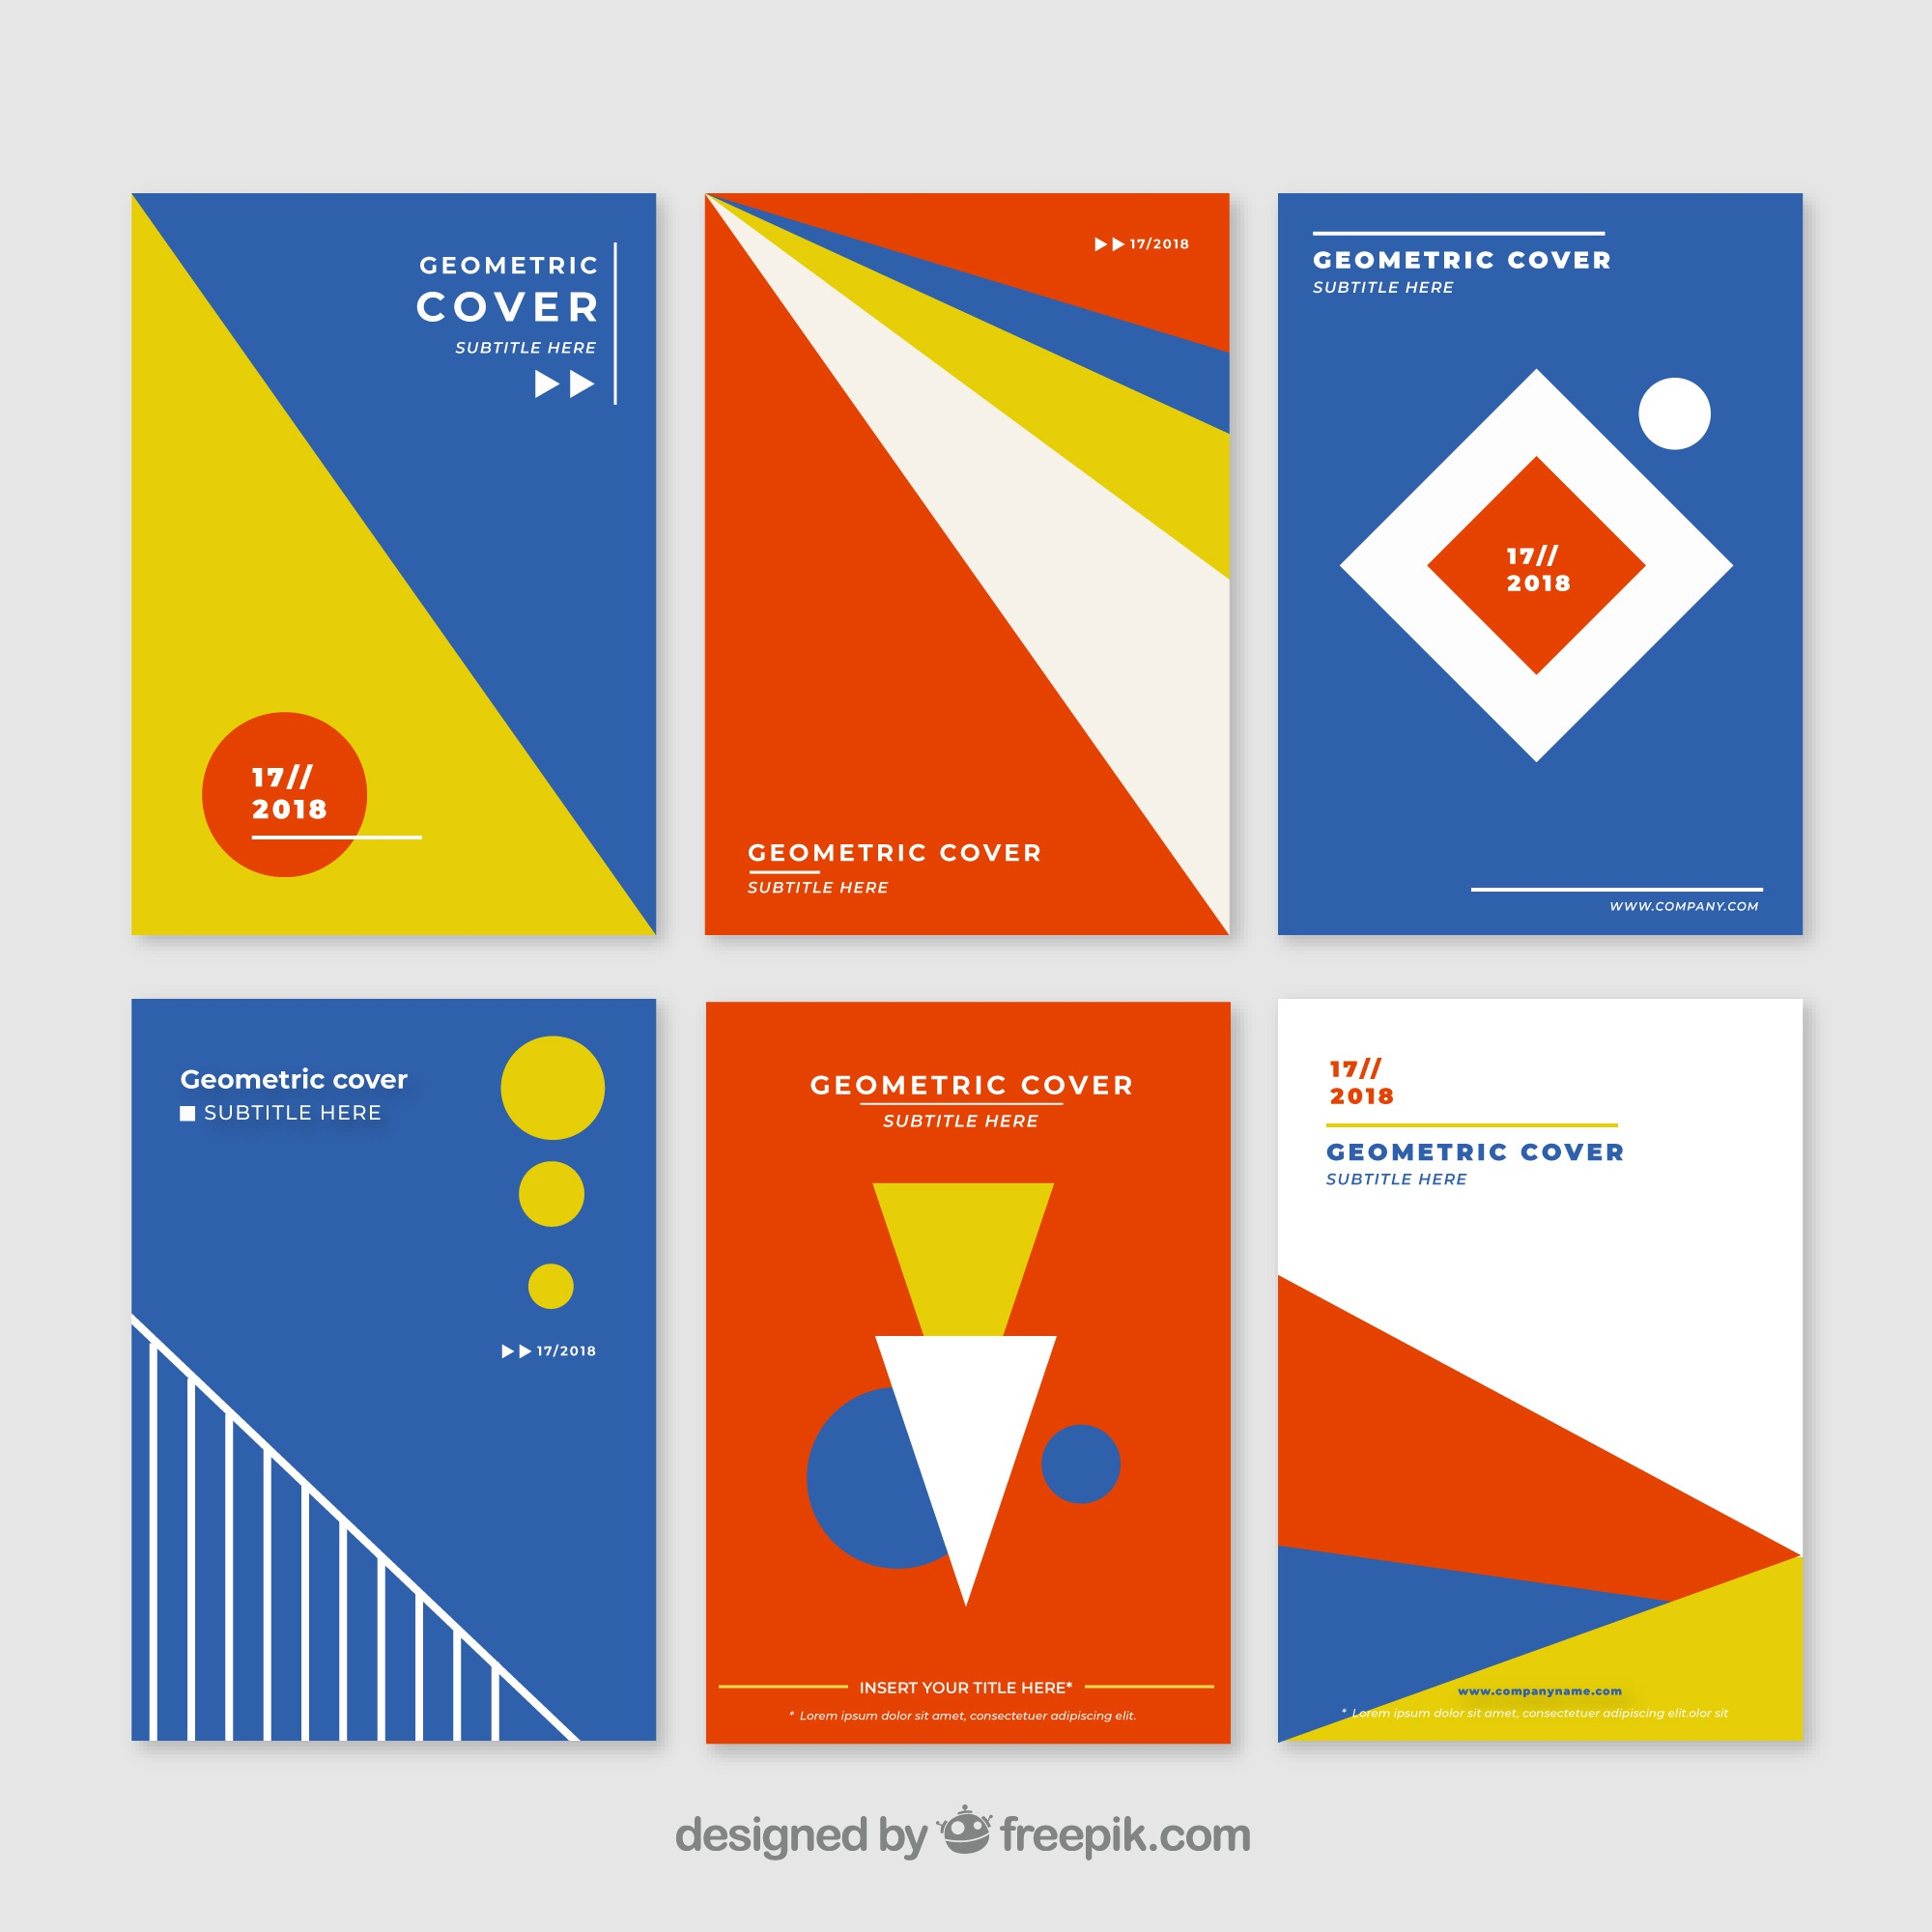 Geometric covers collection with colors